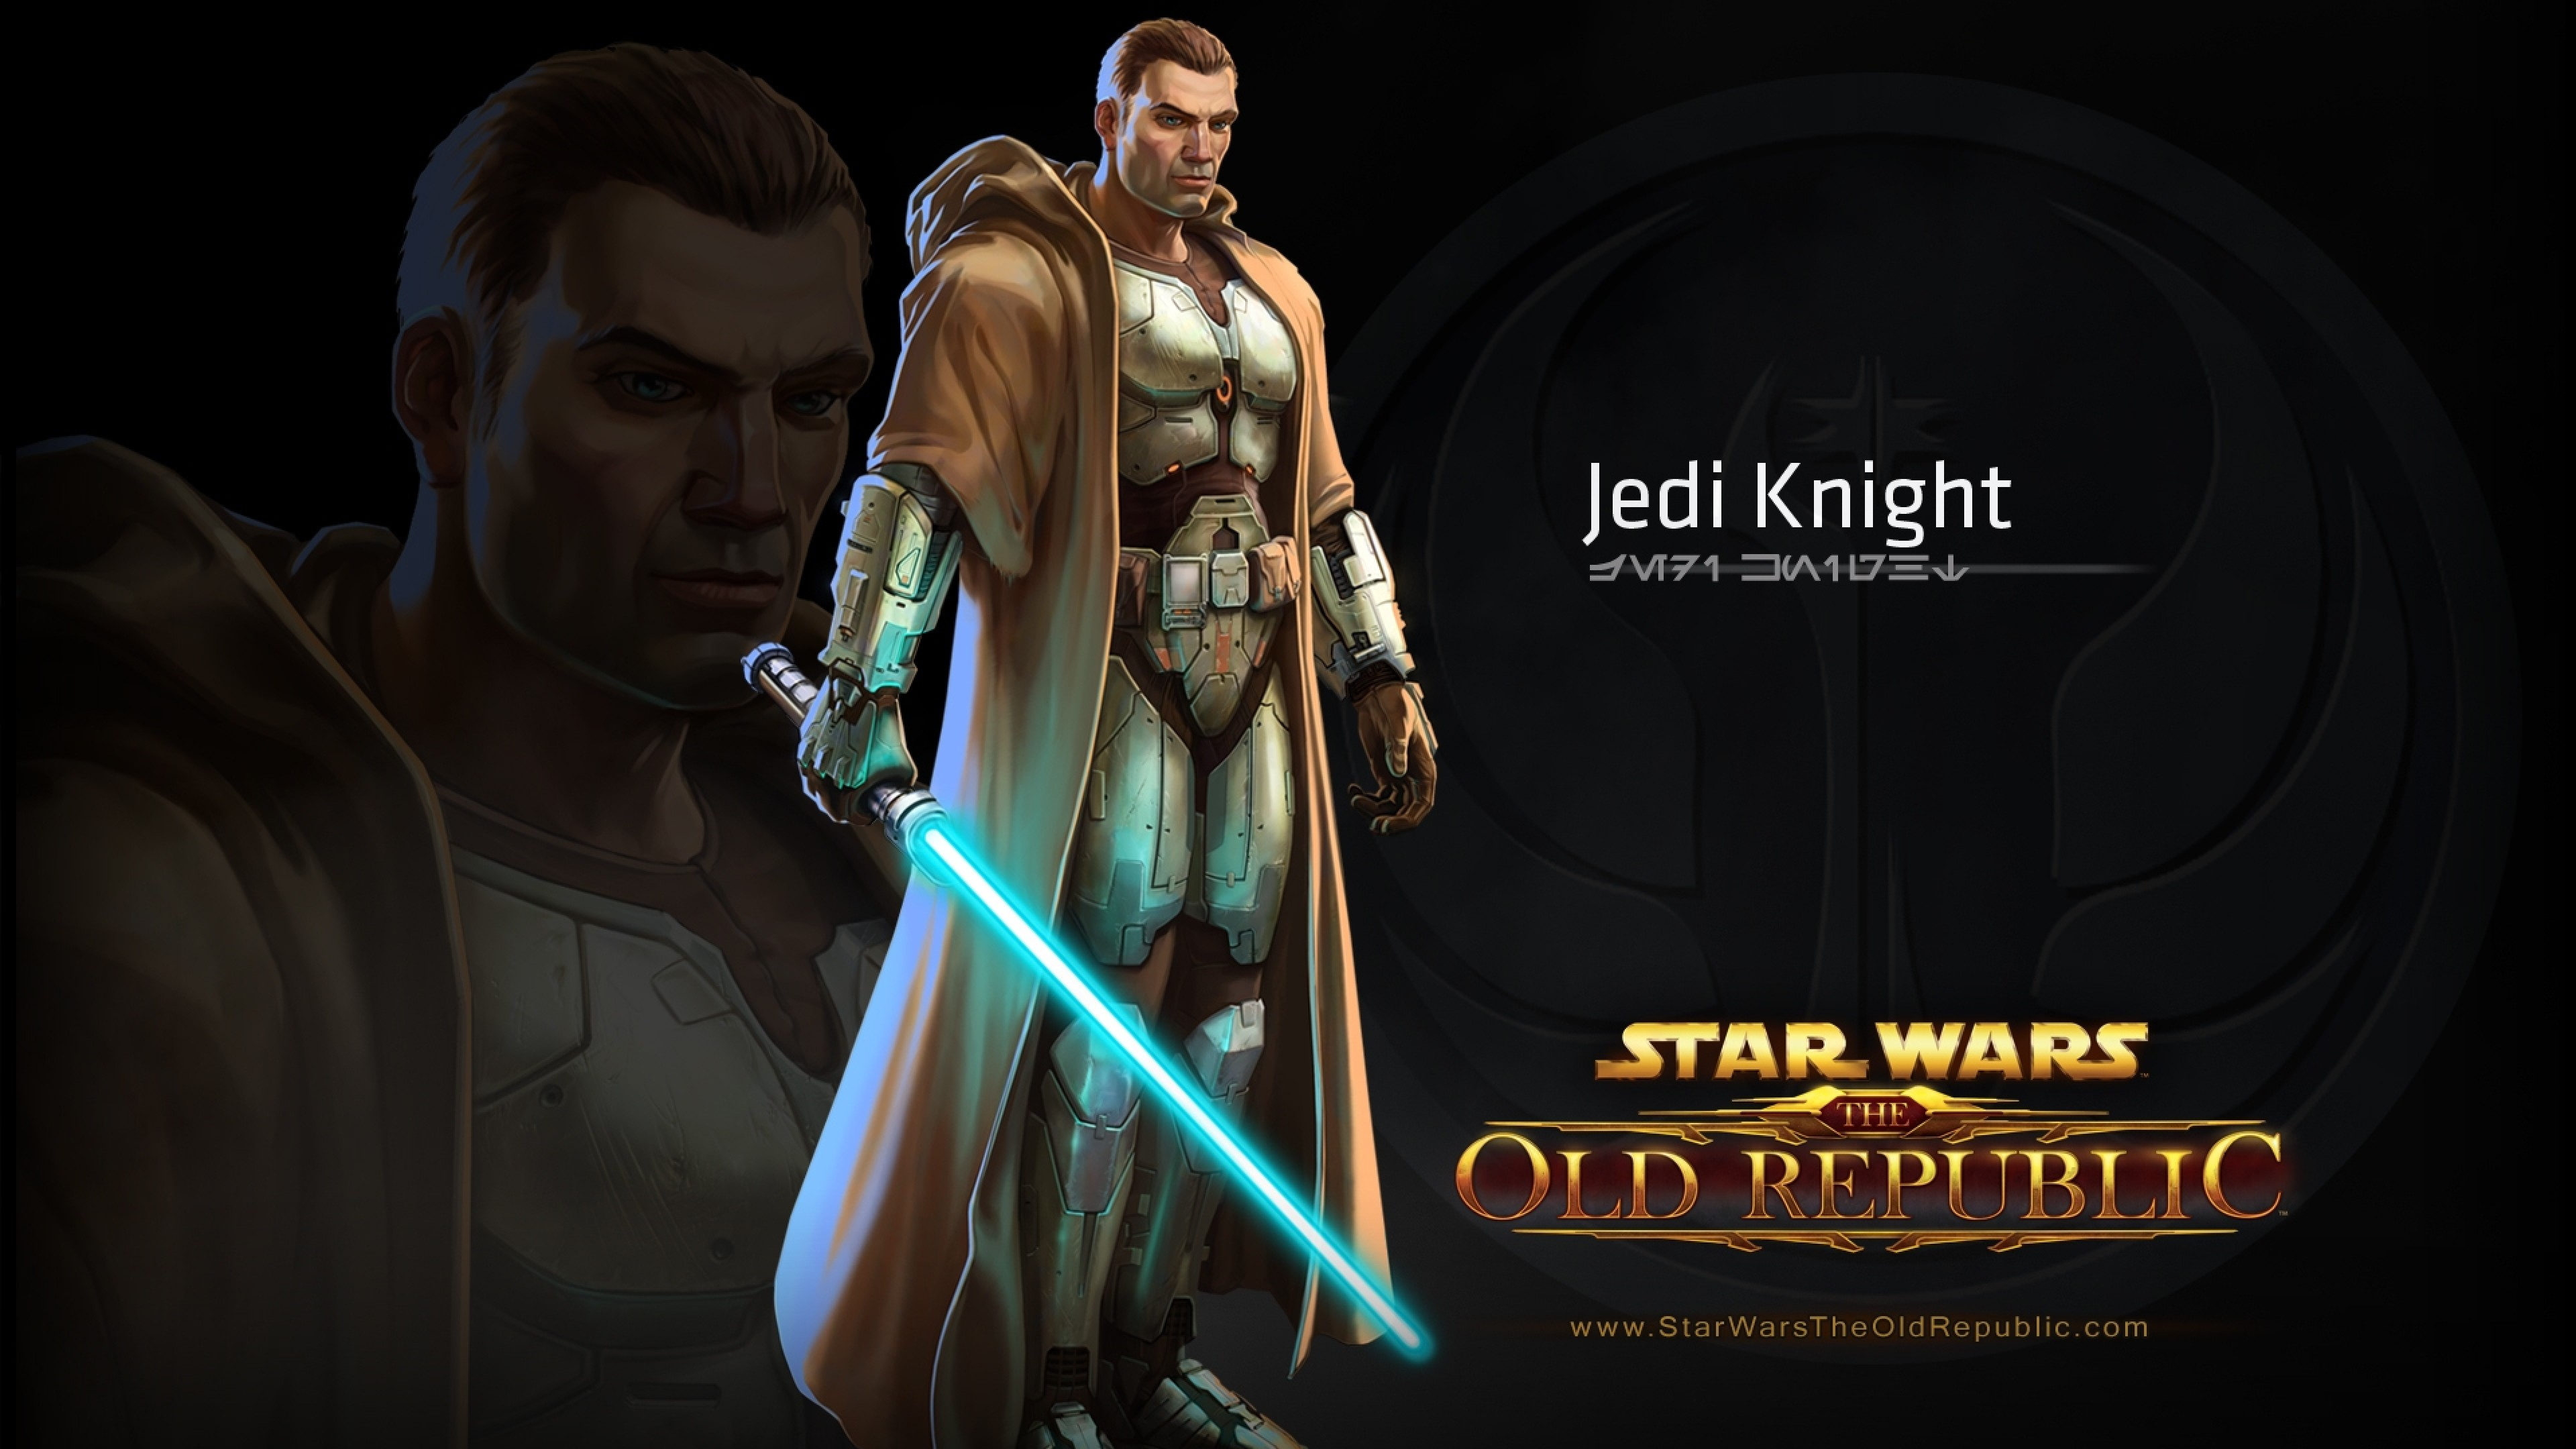 3840x2160 Preview wallpaper star wars the old republic, jedi knight, character,  lightsaber